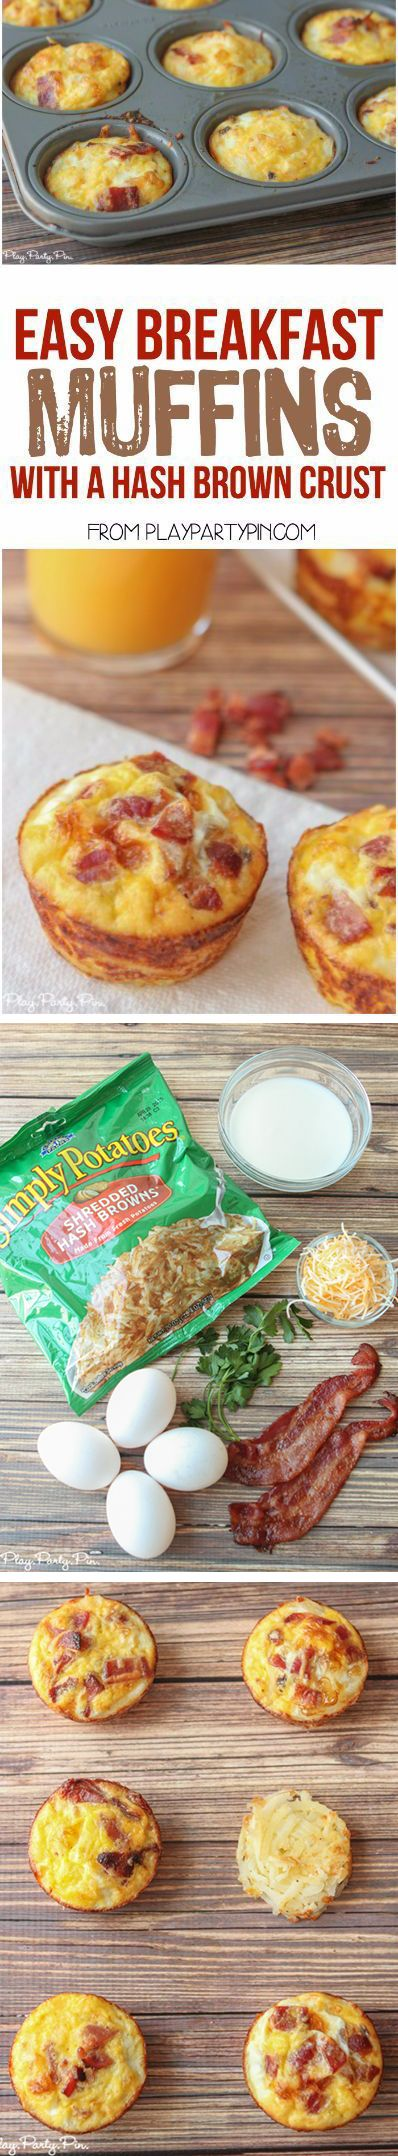 Easy Breakfast Egg & Bacon Muffins with a Hash Brown Crust. Halloween Brunch, Deviliciously Delicious